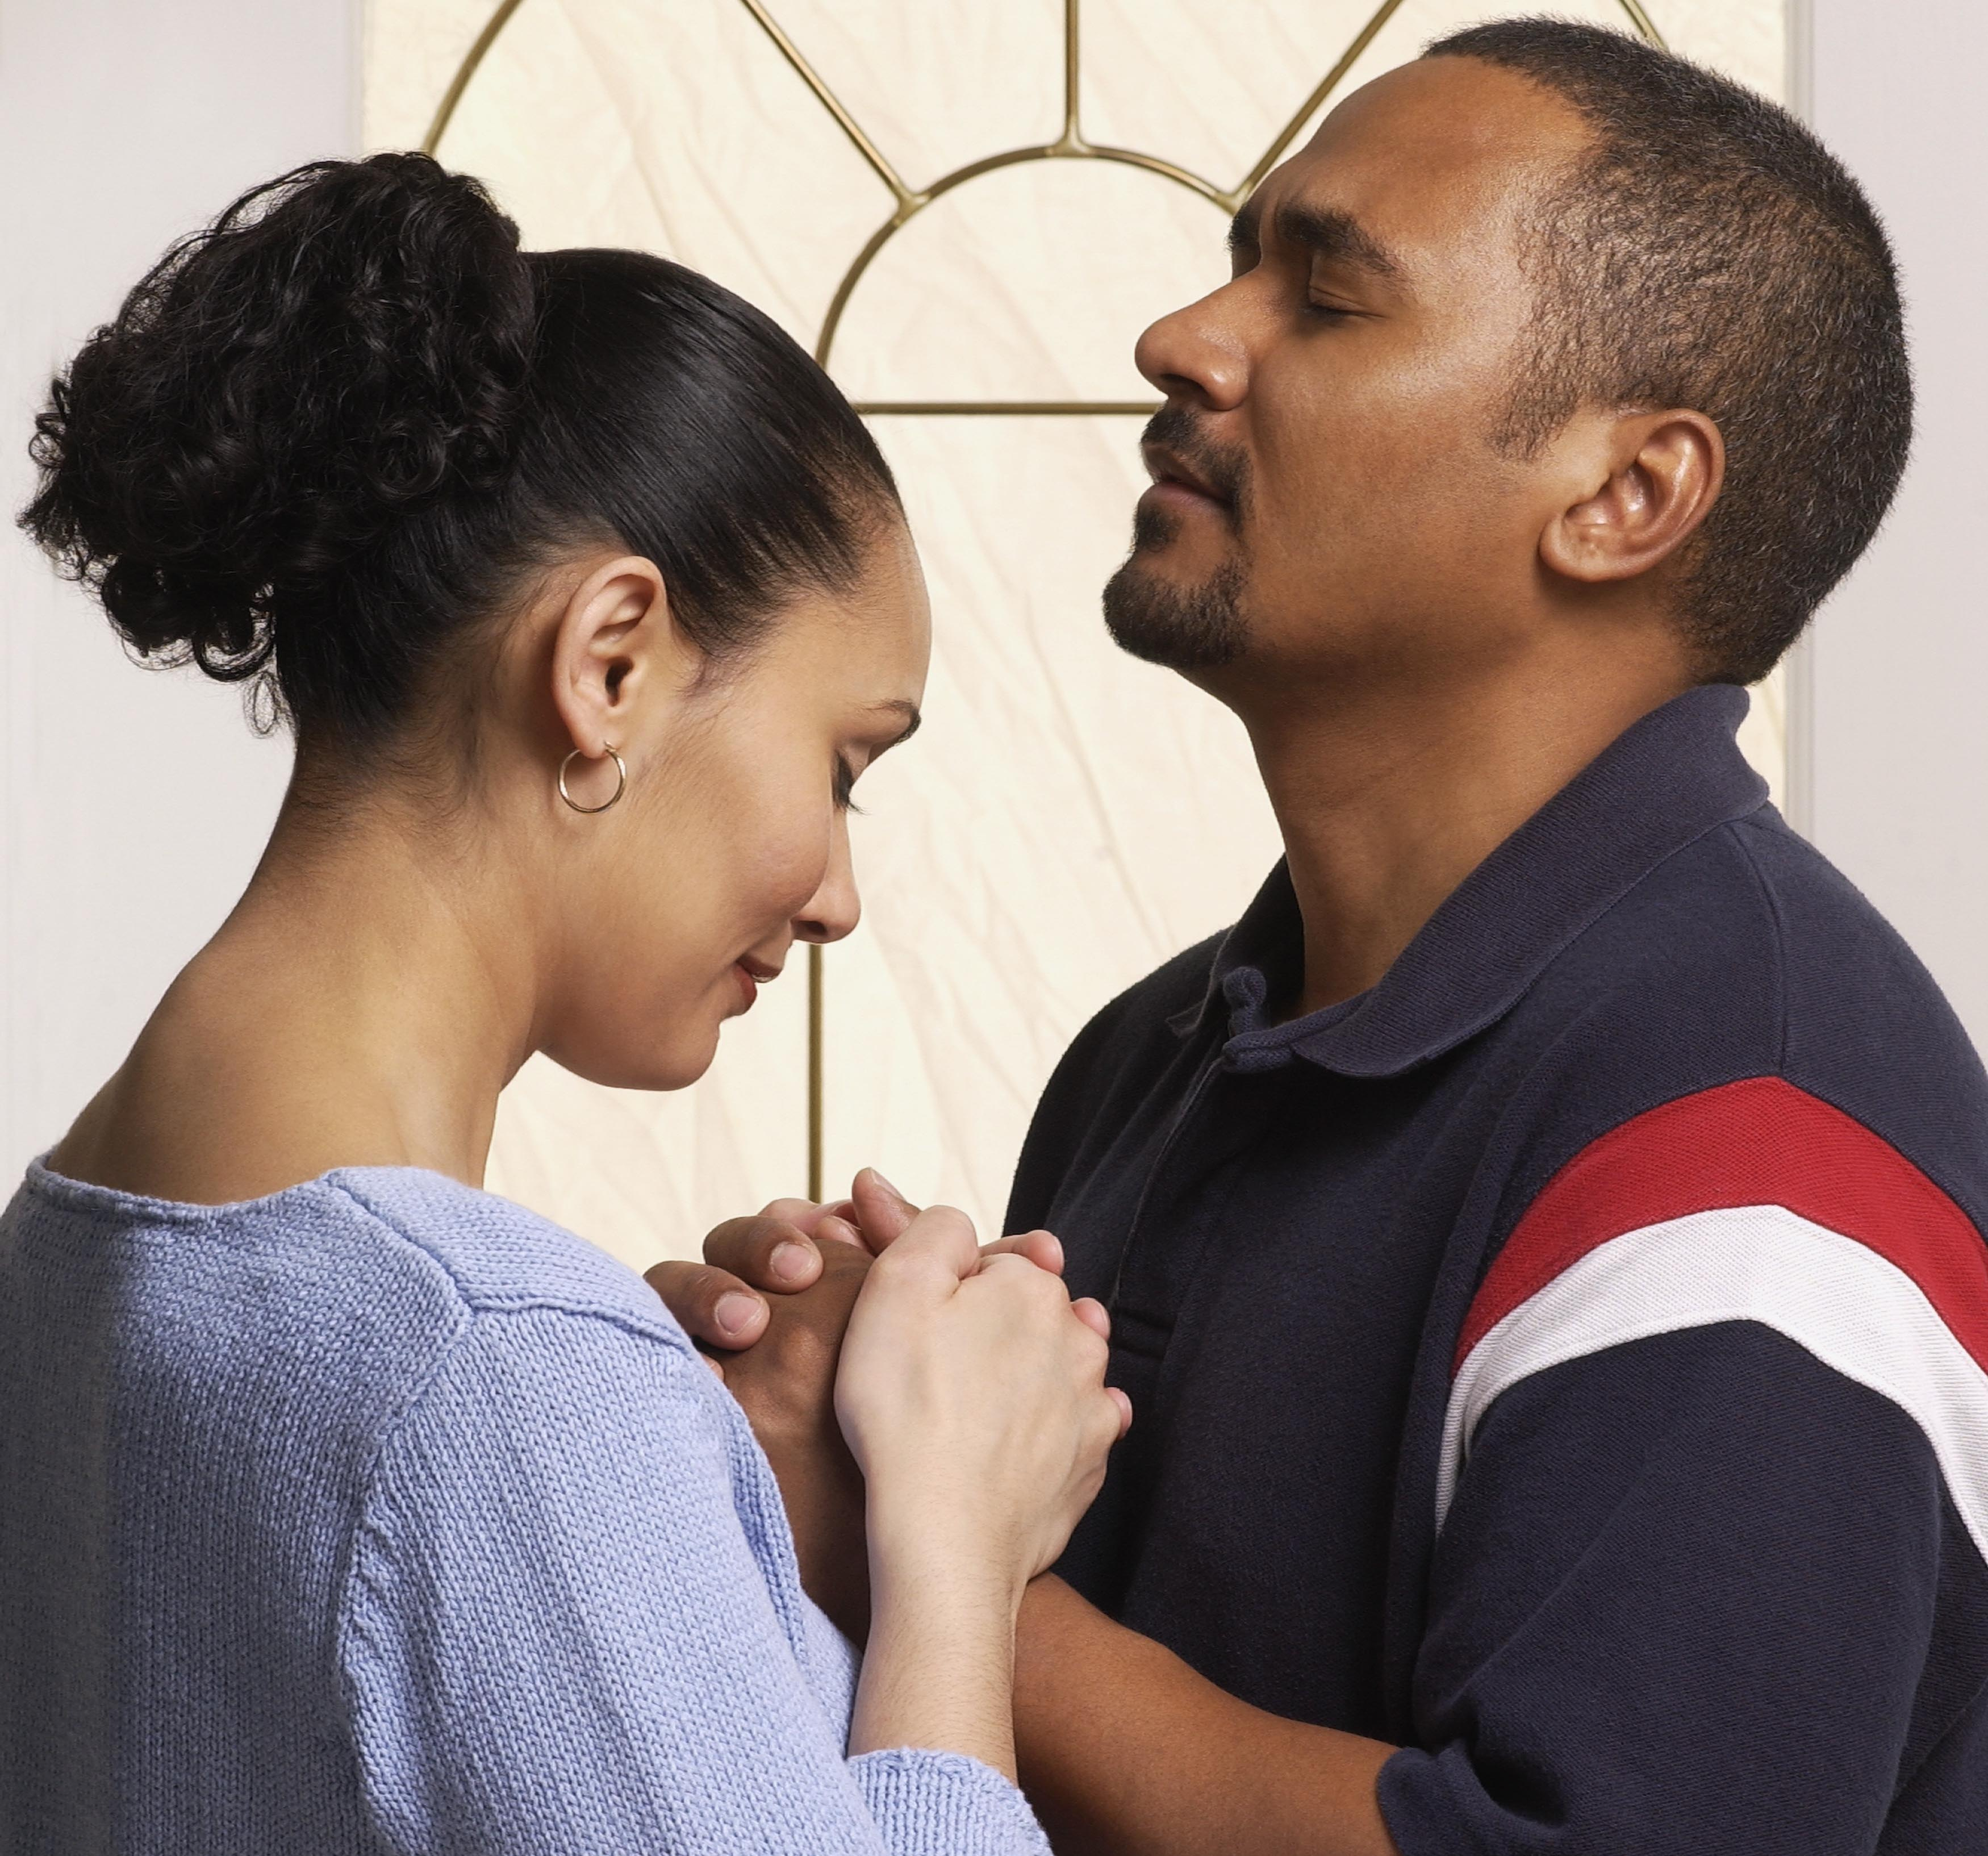 Why dating and praying together is not such a good idea